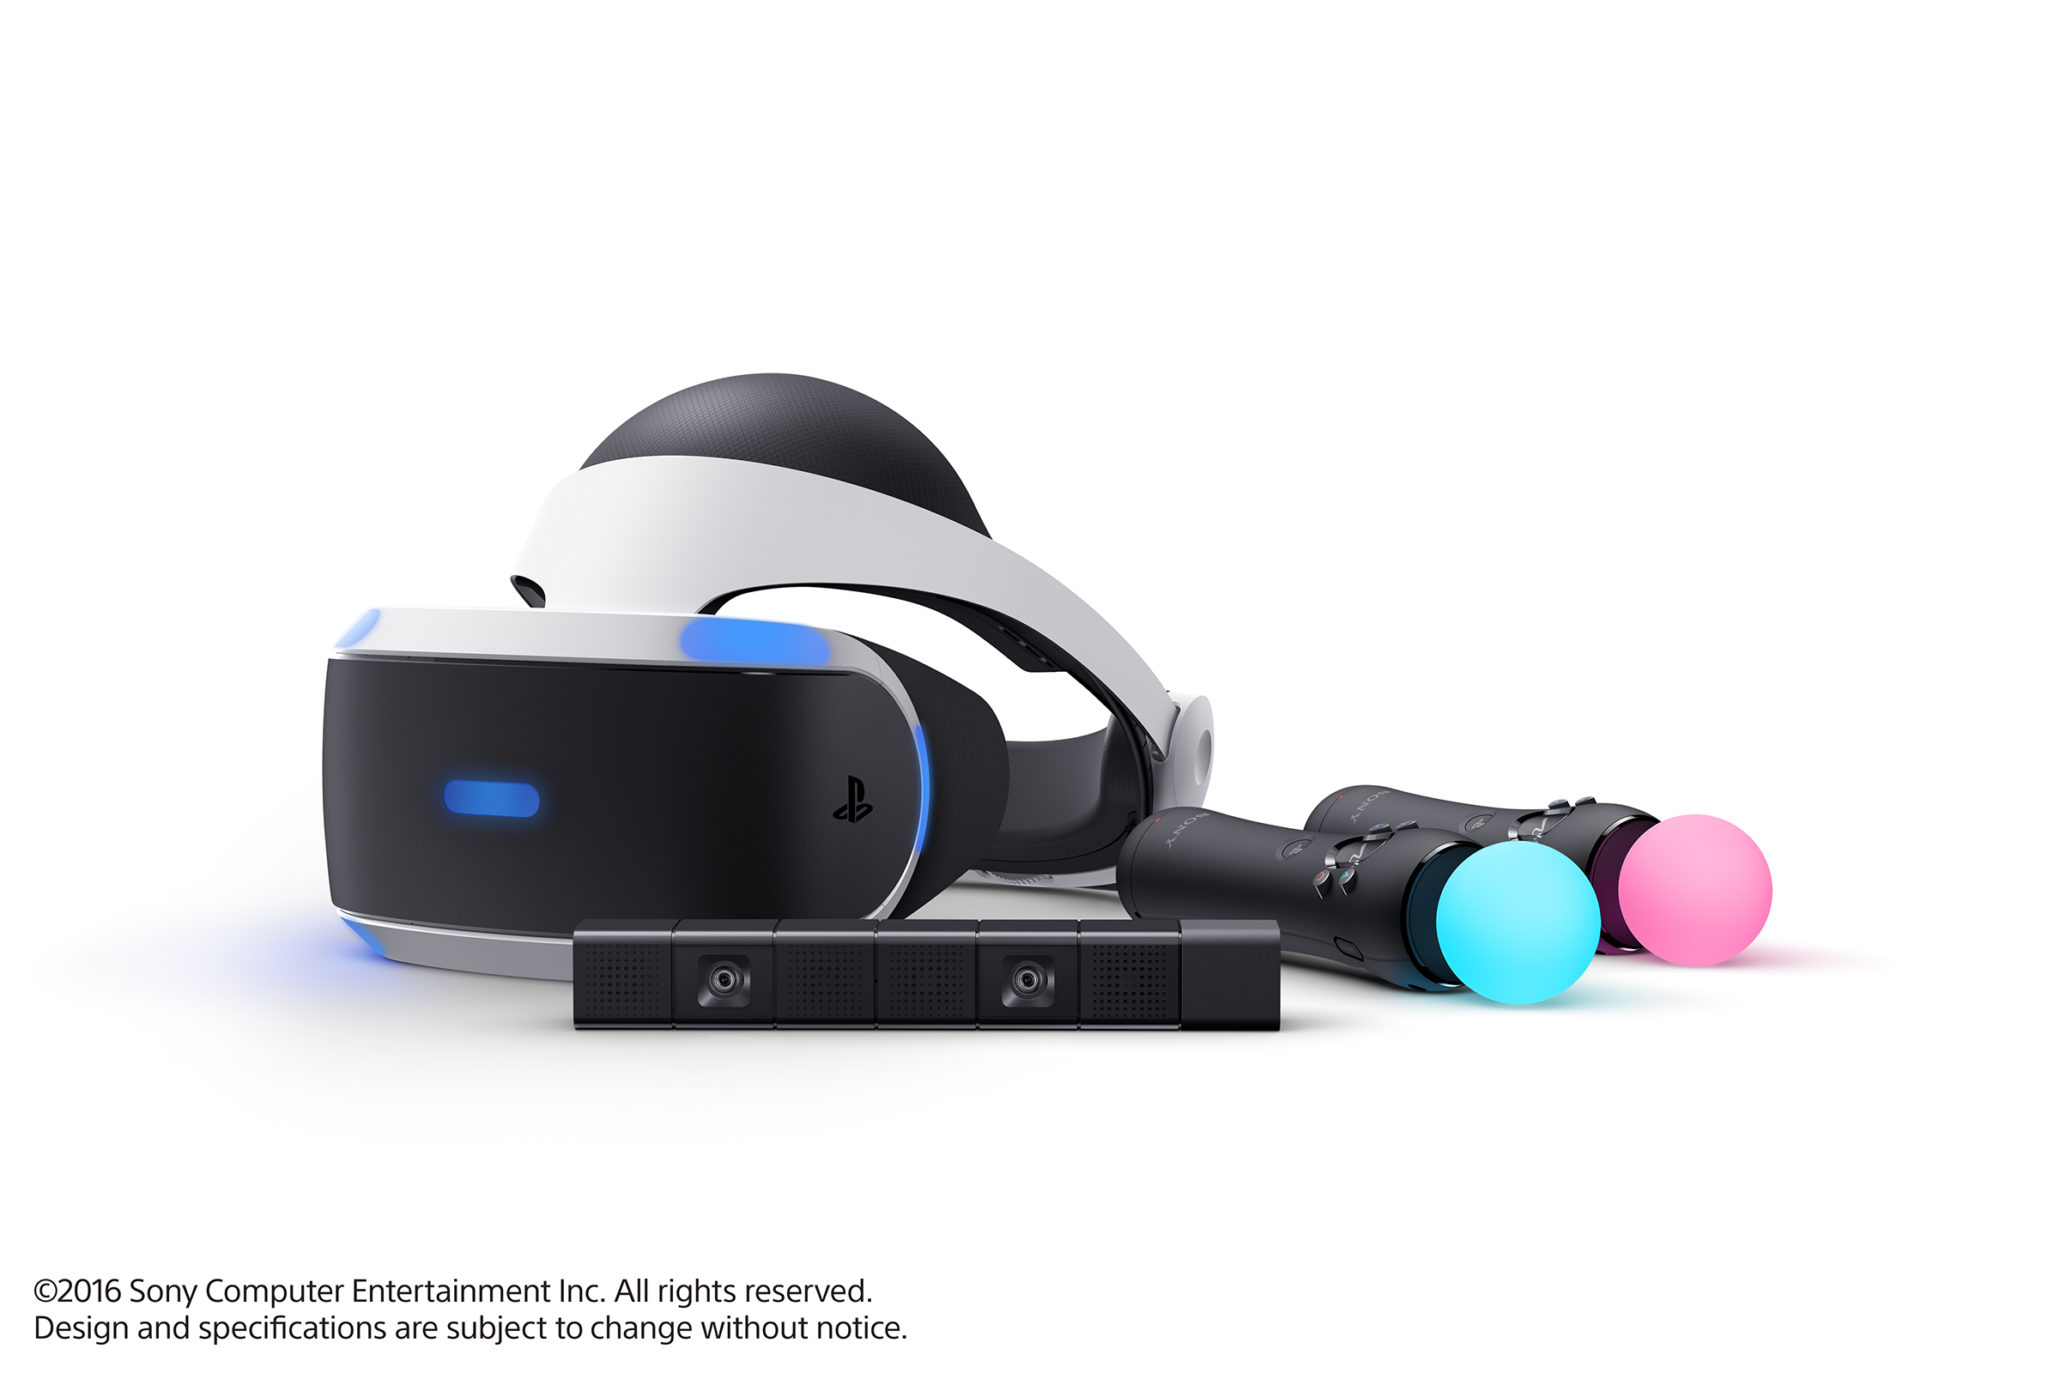 PlayStation VR Compatibility With The Upcoming PS5 Confirmed